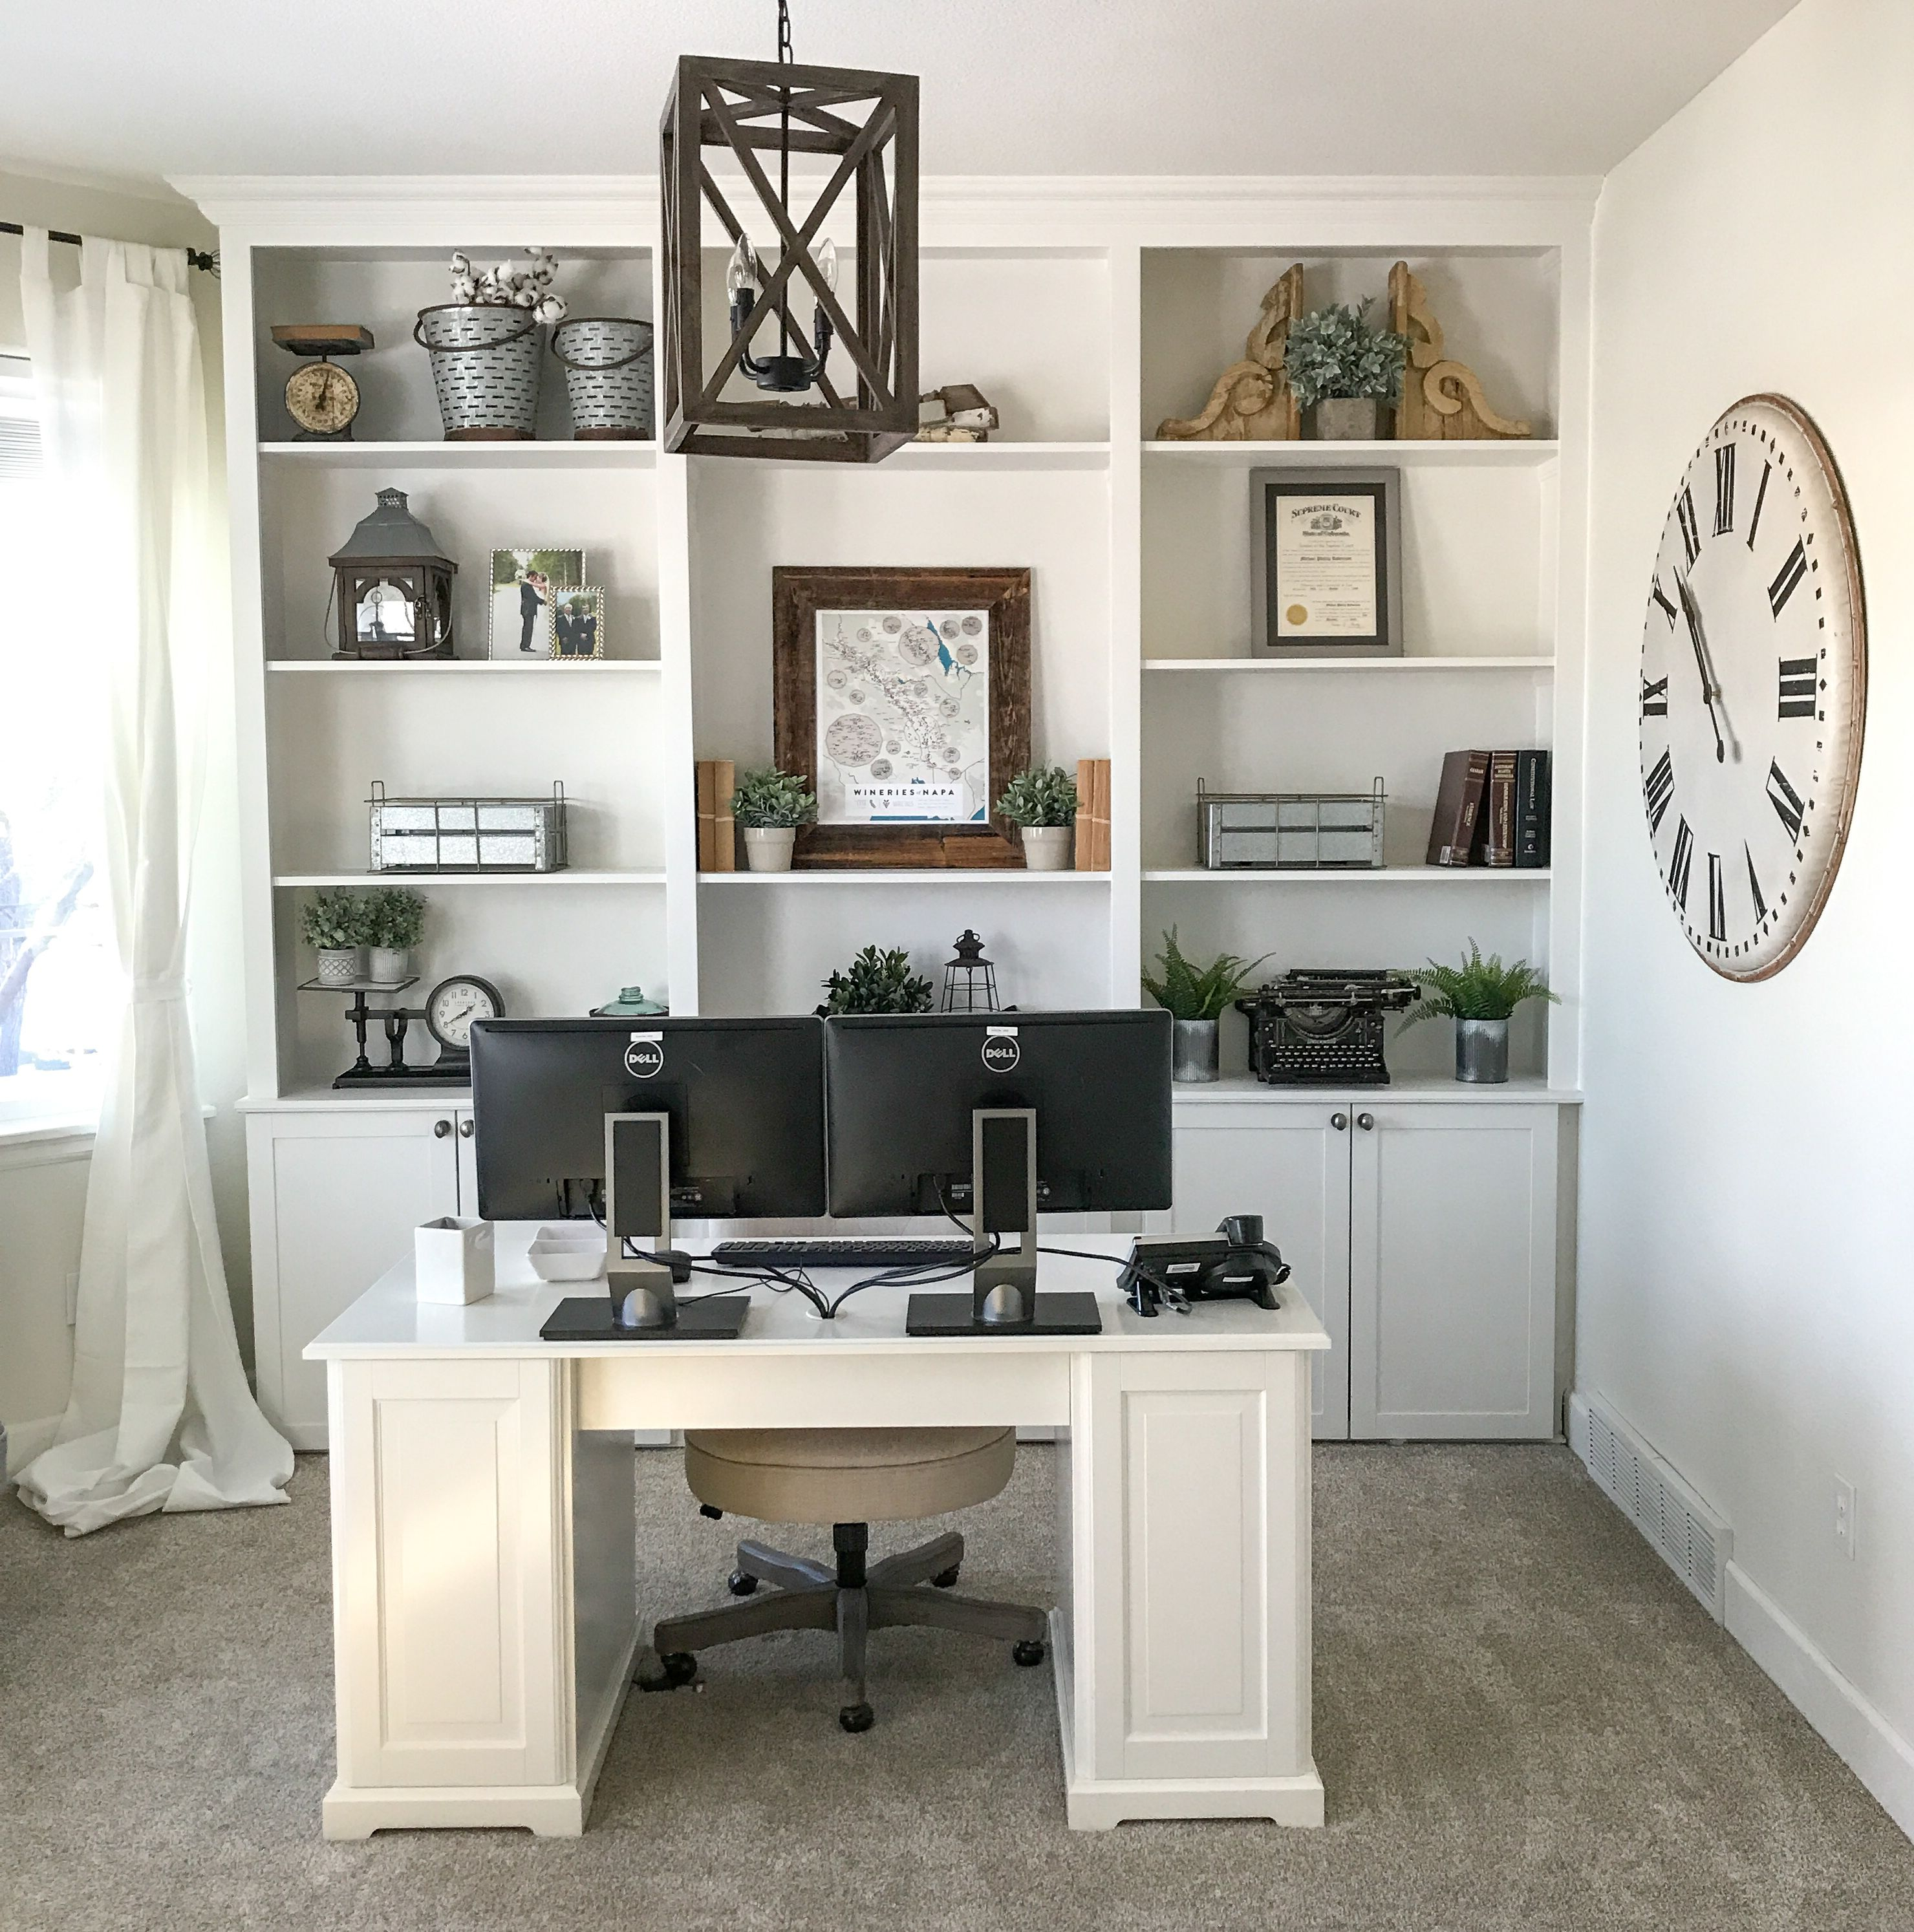 Home Office Decor: Today I Am So Excited To Share Our Office In The Farmhouse